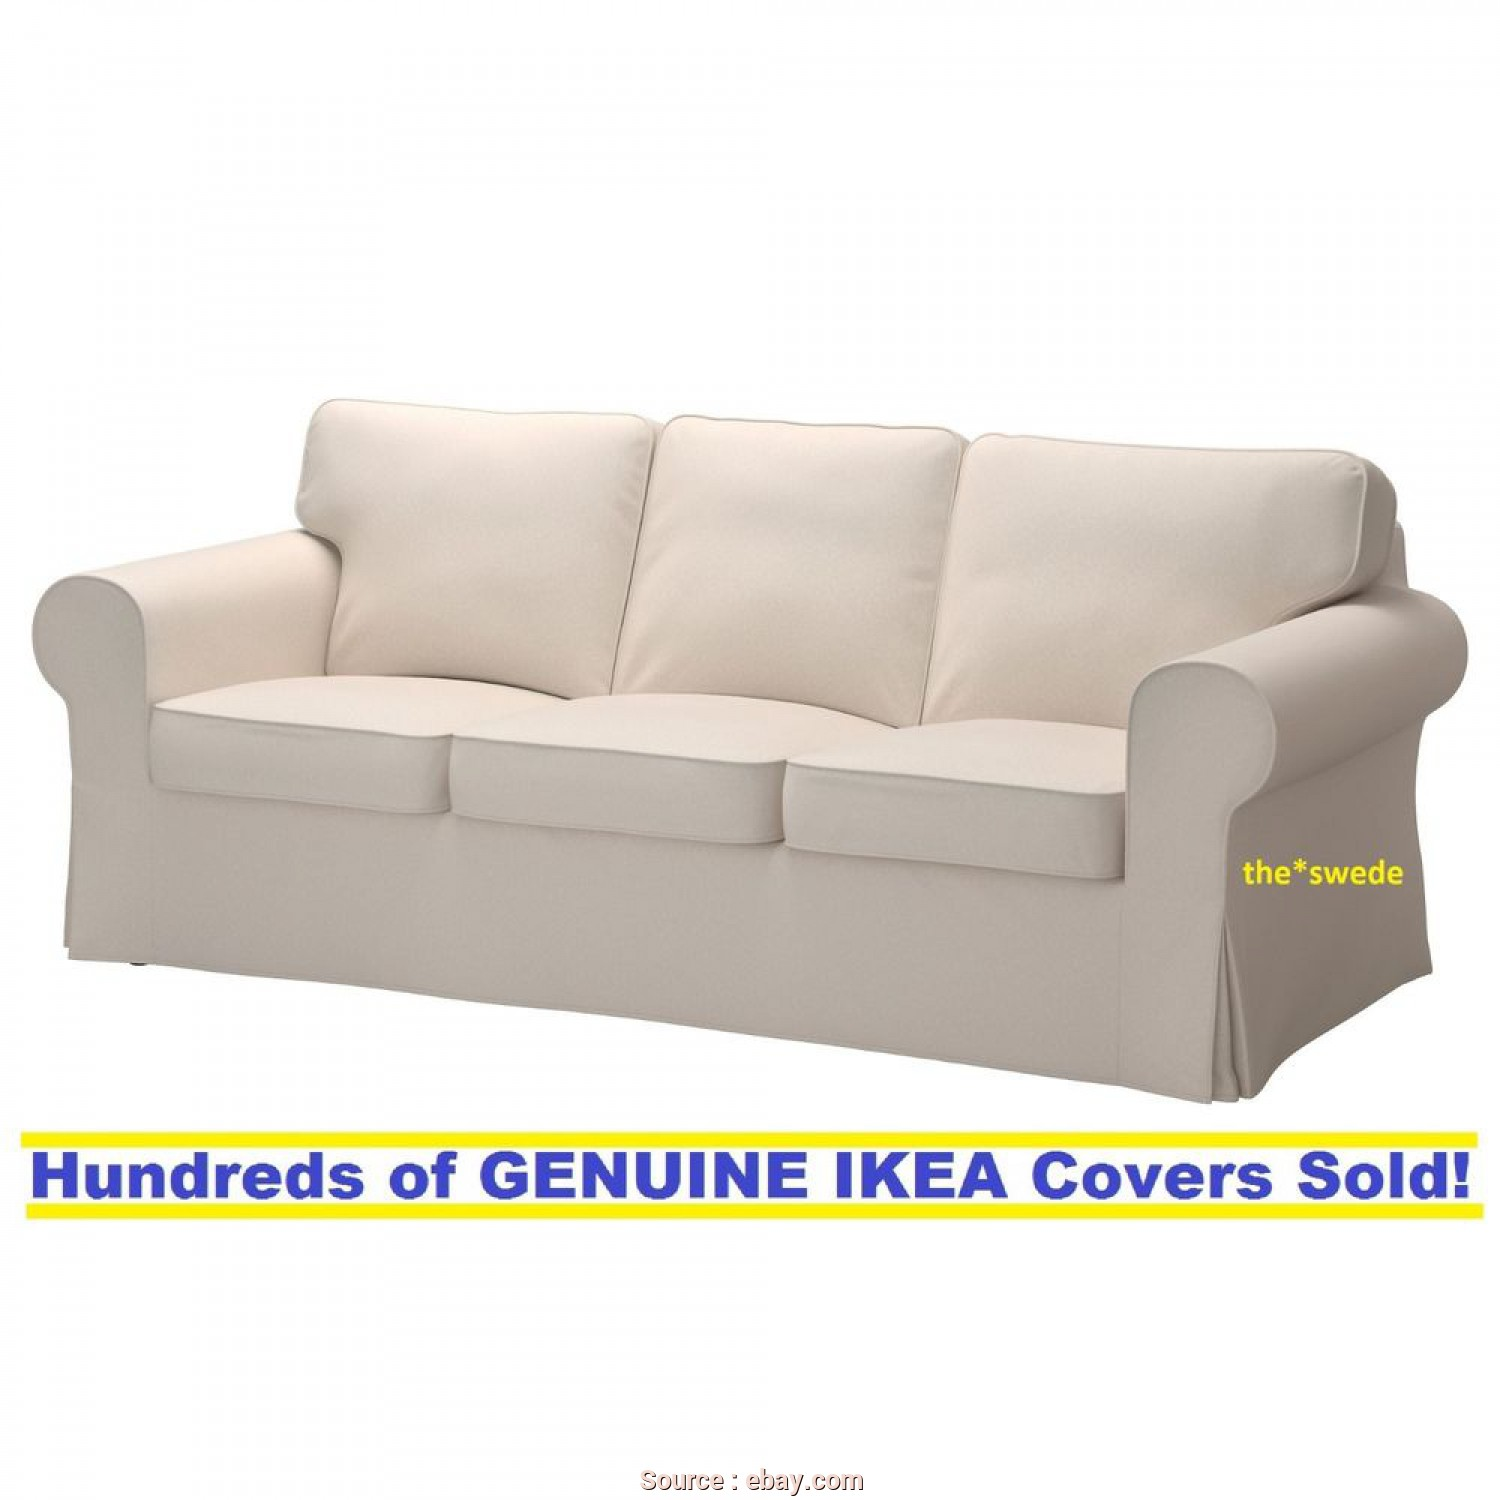 Ikea Backabro Garantie, Ideale Details About Ikea EKTORP Three, Seat Sofa Slipcover Cover LOFALLET BEIGE New! SEALED